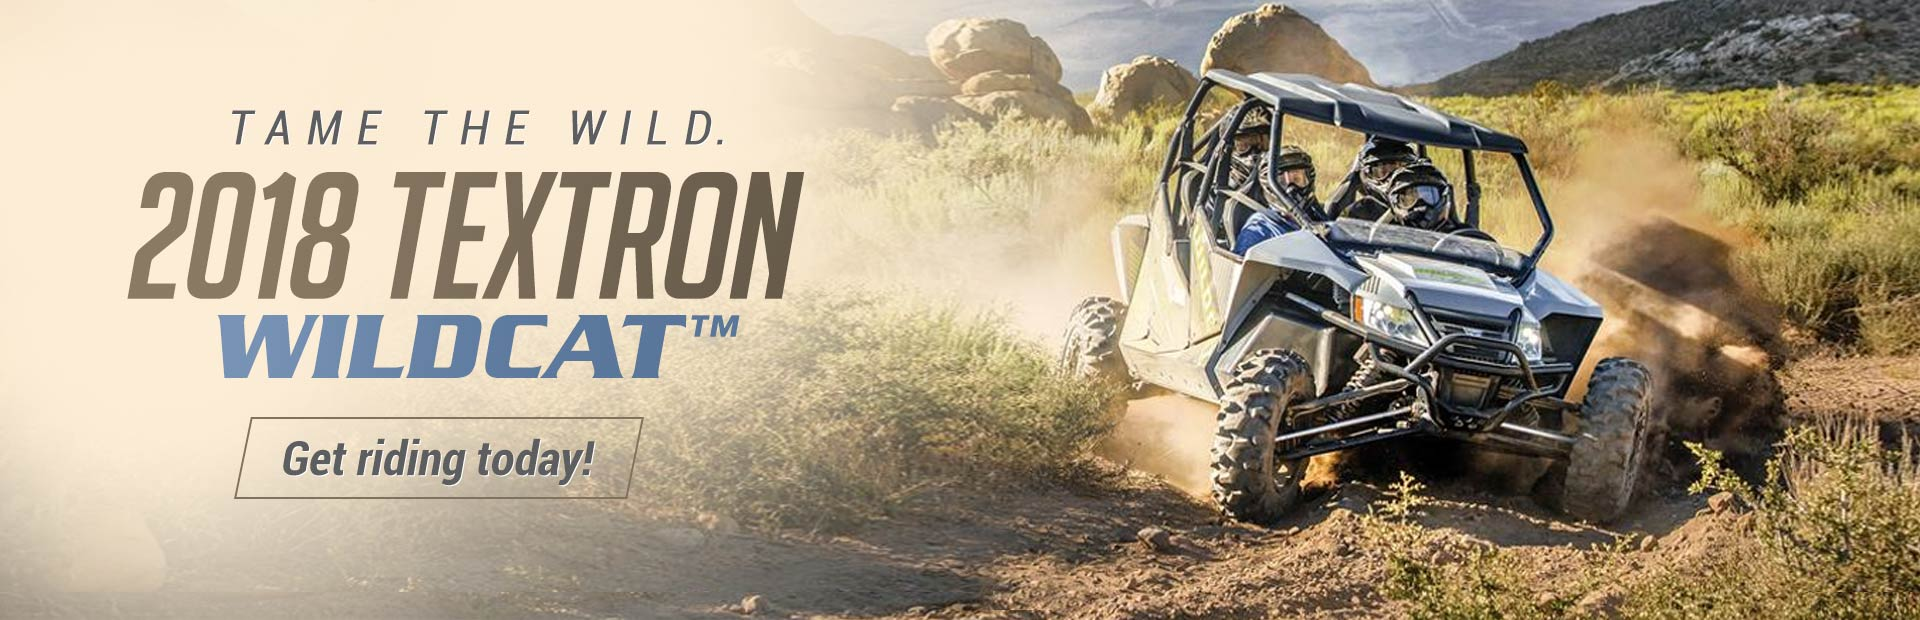 Get riding with the 2018 Textron Wildcat™! Click here to view the models.